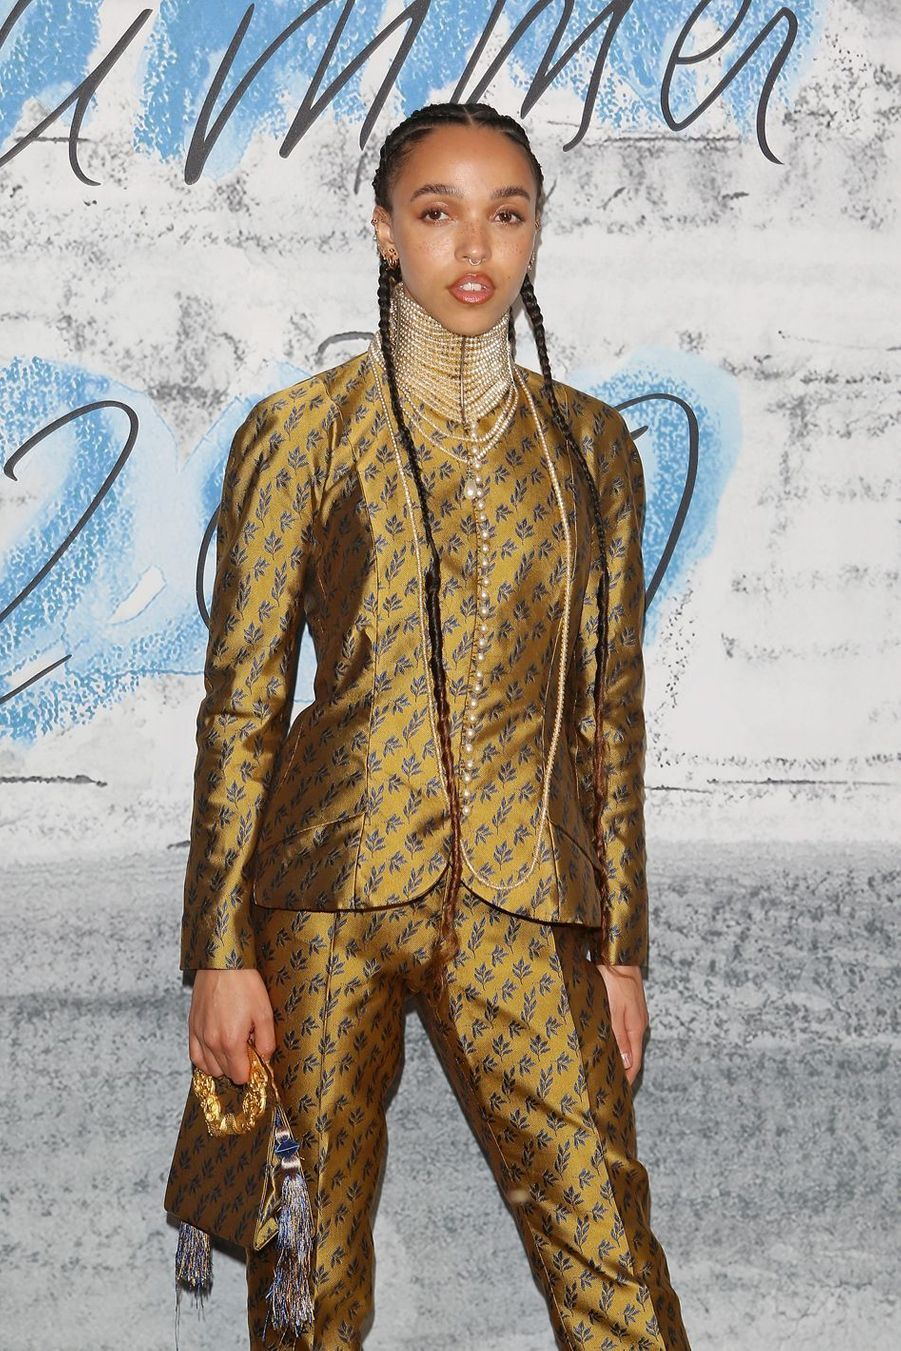 FKA Twigs à la Serpentine Summer Party à Londres le 25 juin 2019